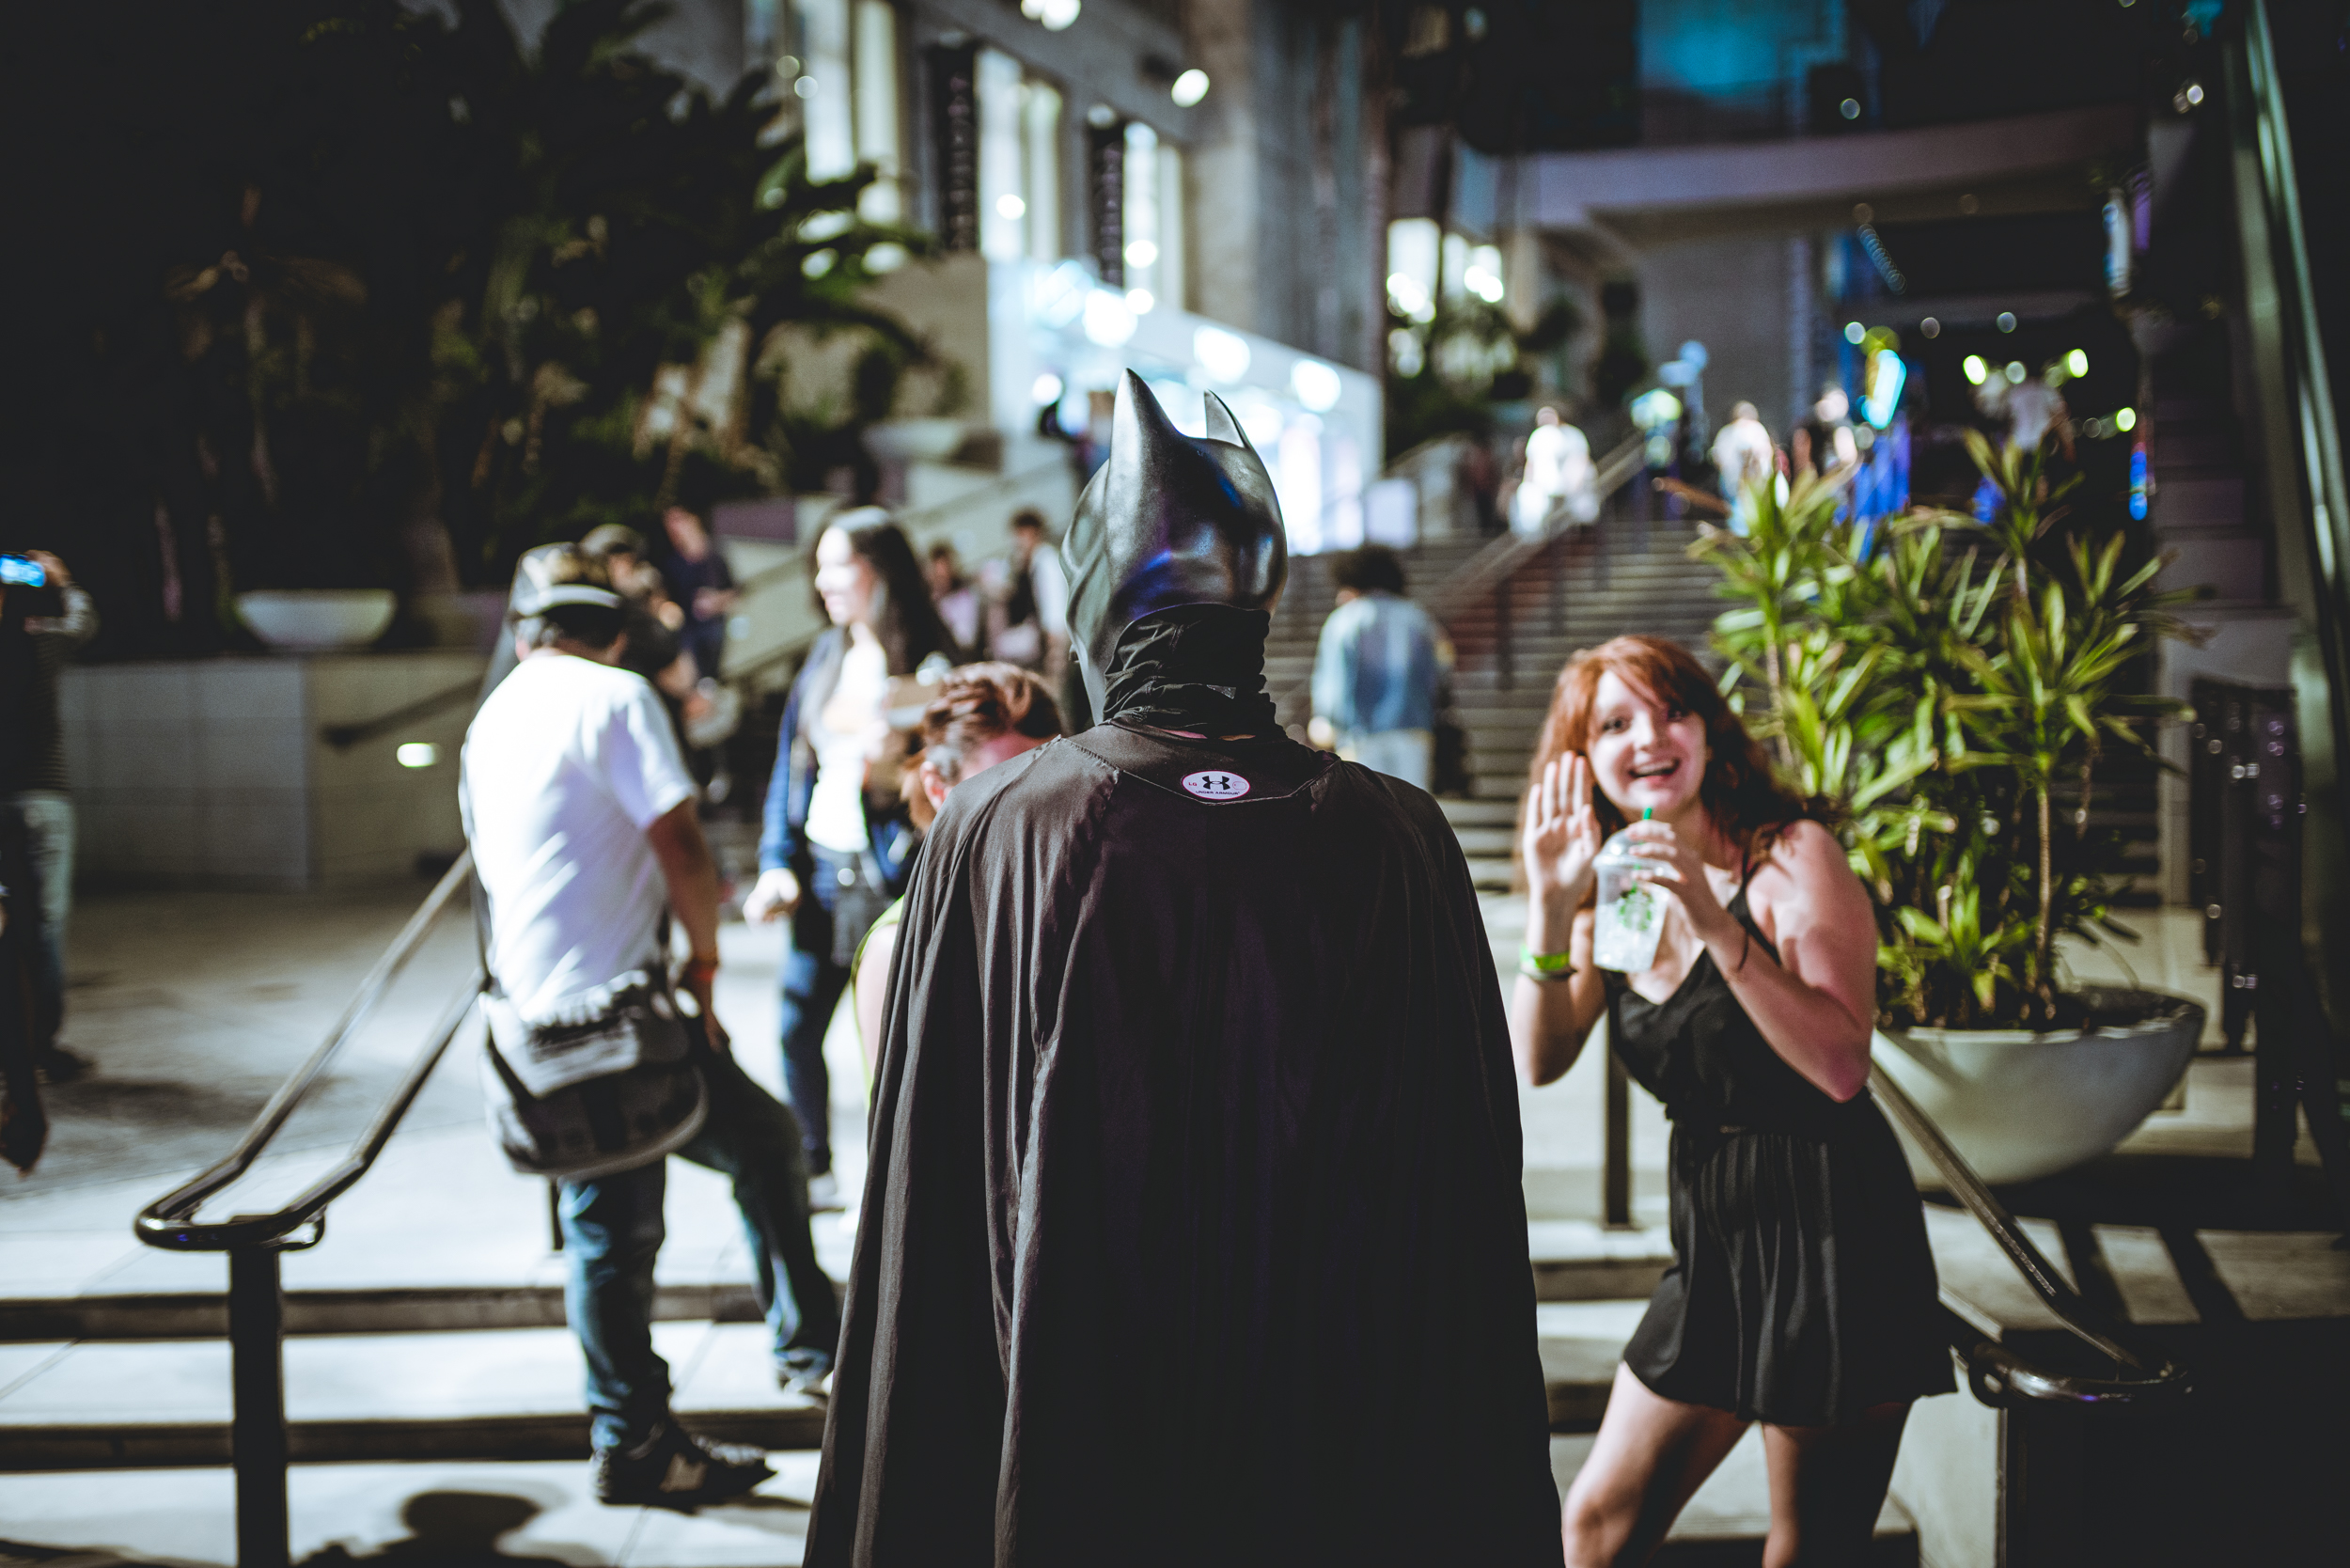 Batman and an over enthusiastic lady